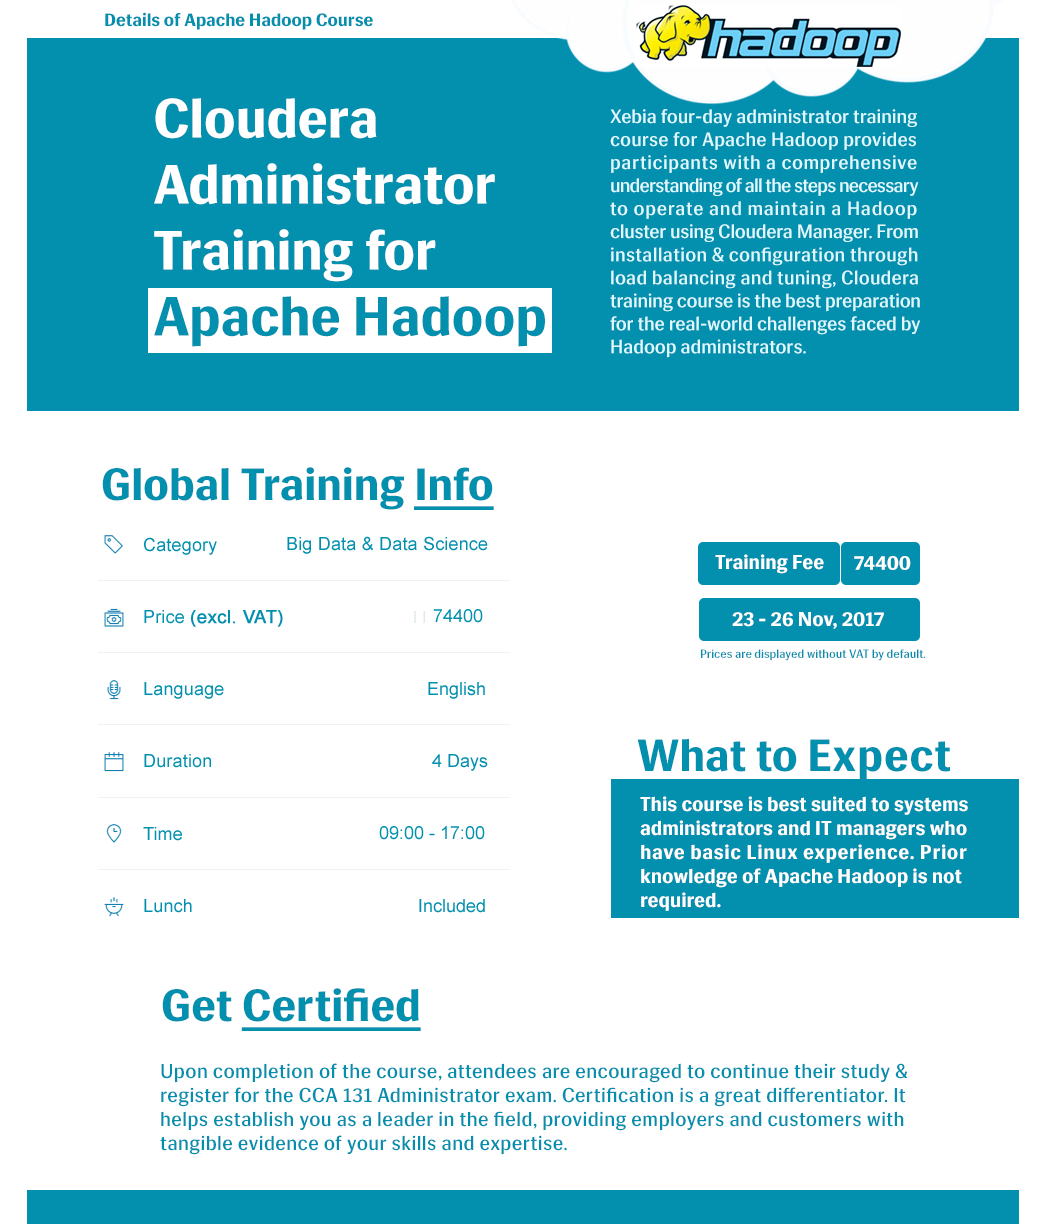 Cloudera Administrator Training Certification For Apache Hadoop In